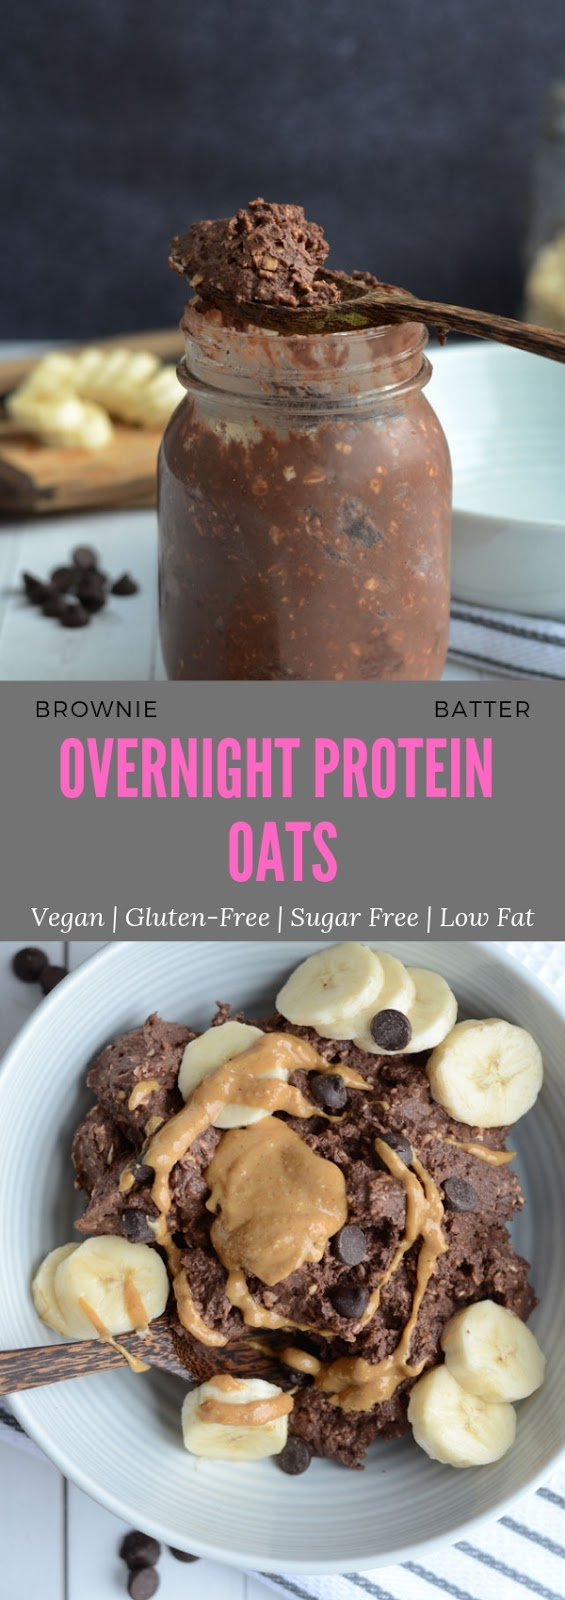 BROWNIE BATTER OVERNIGHT PROTEIN OATS #breakfast #healthy #brownie #batter #overnight #protein #oats